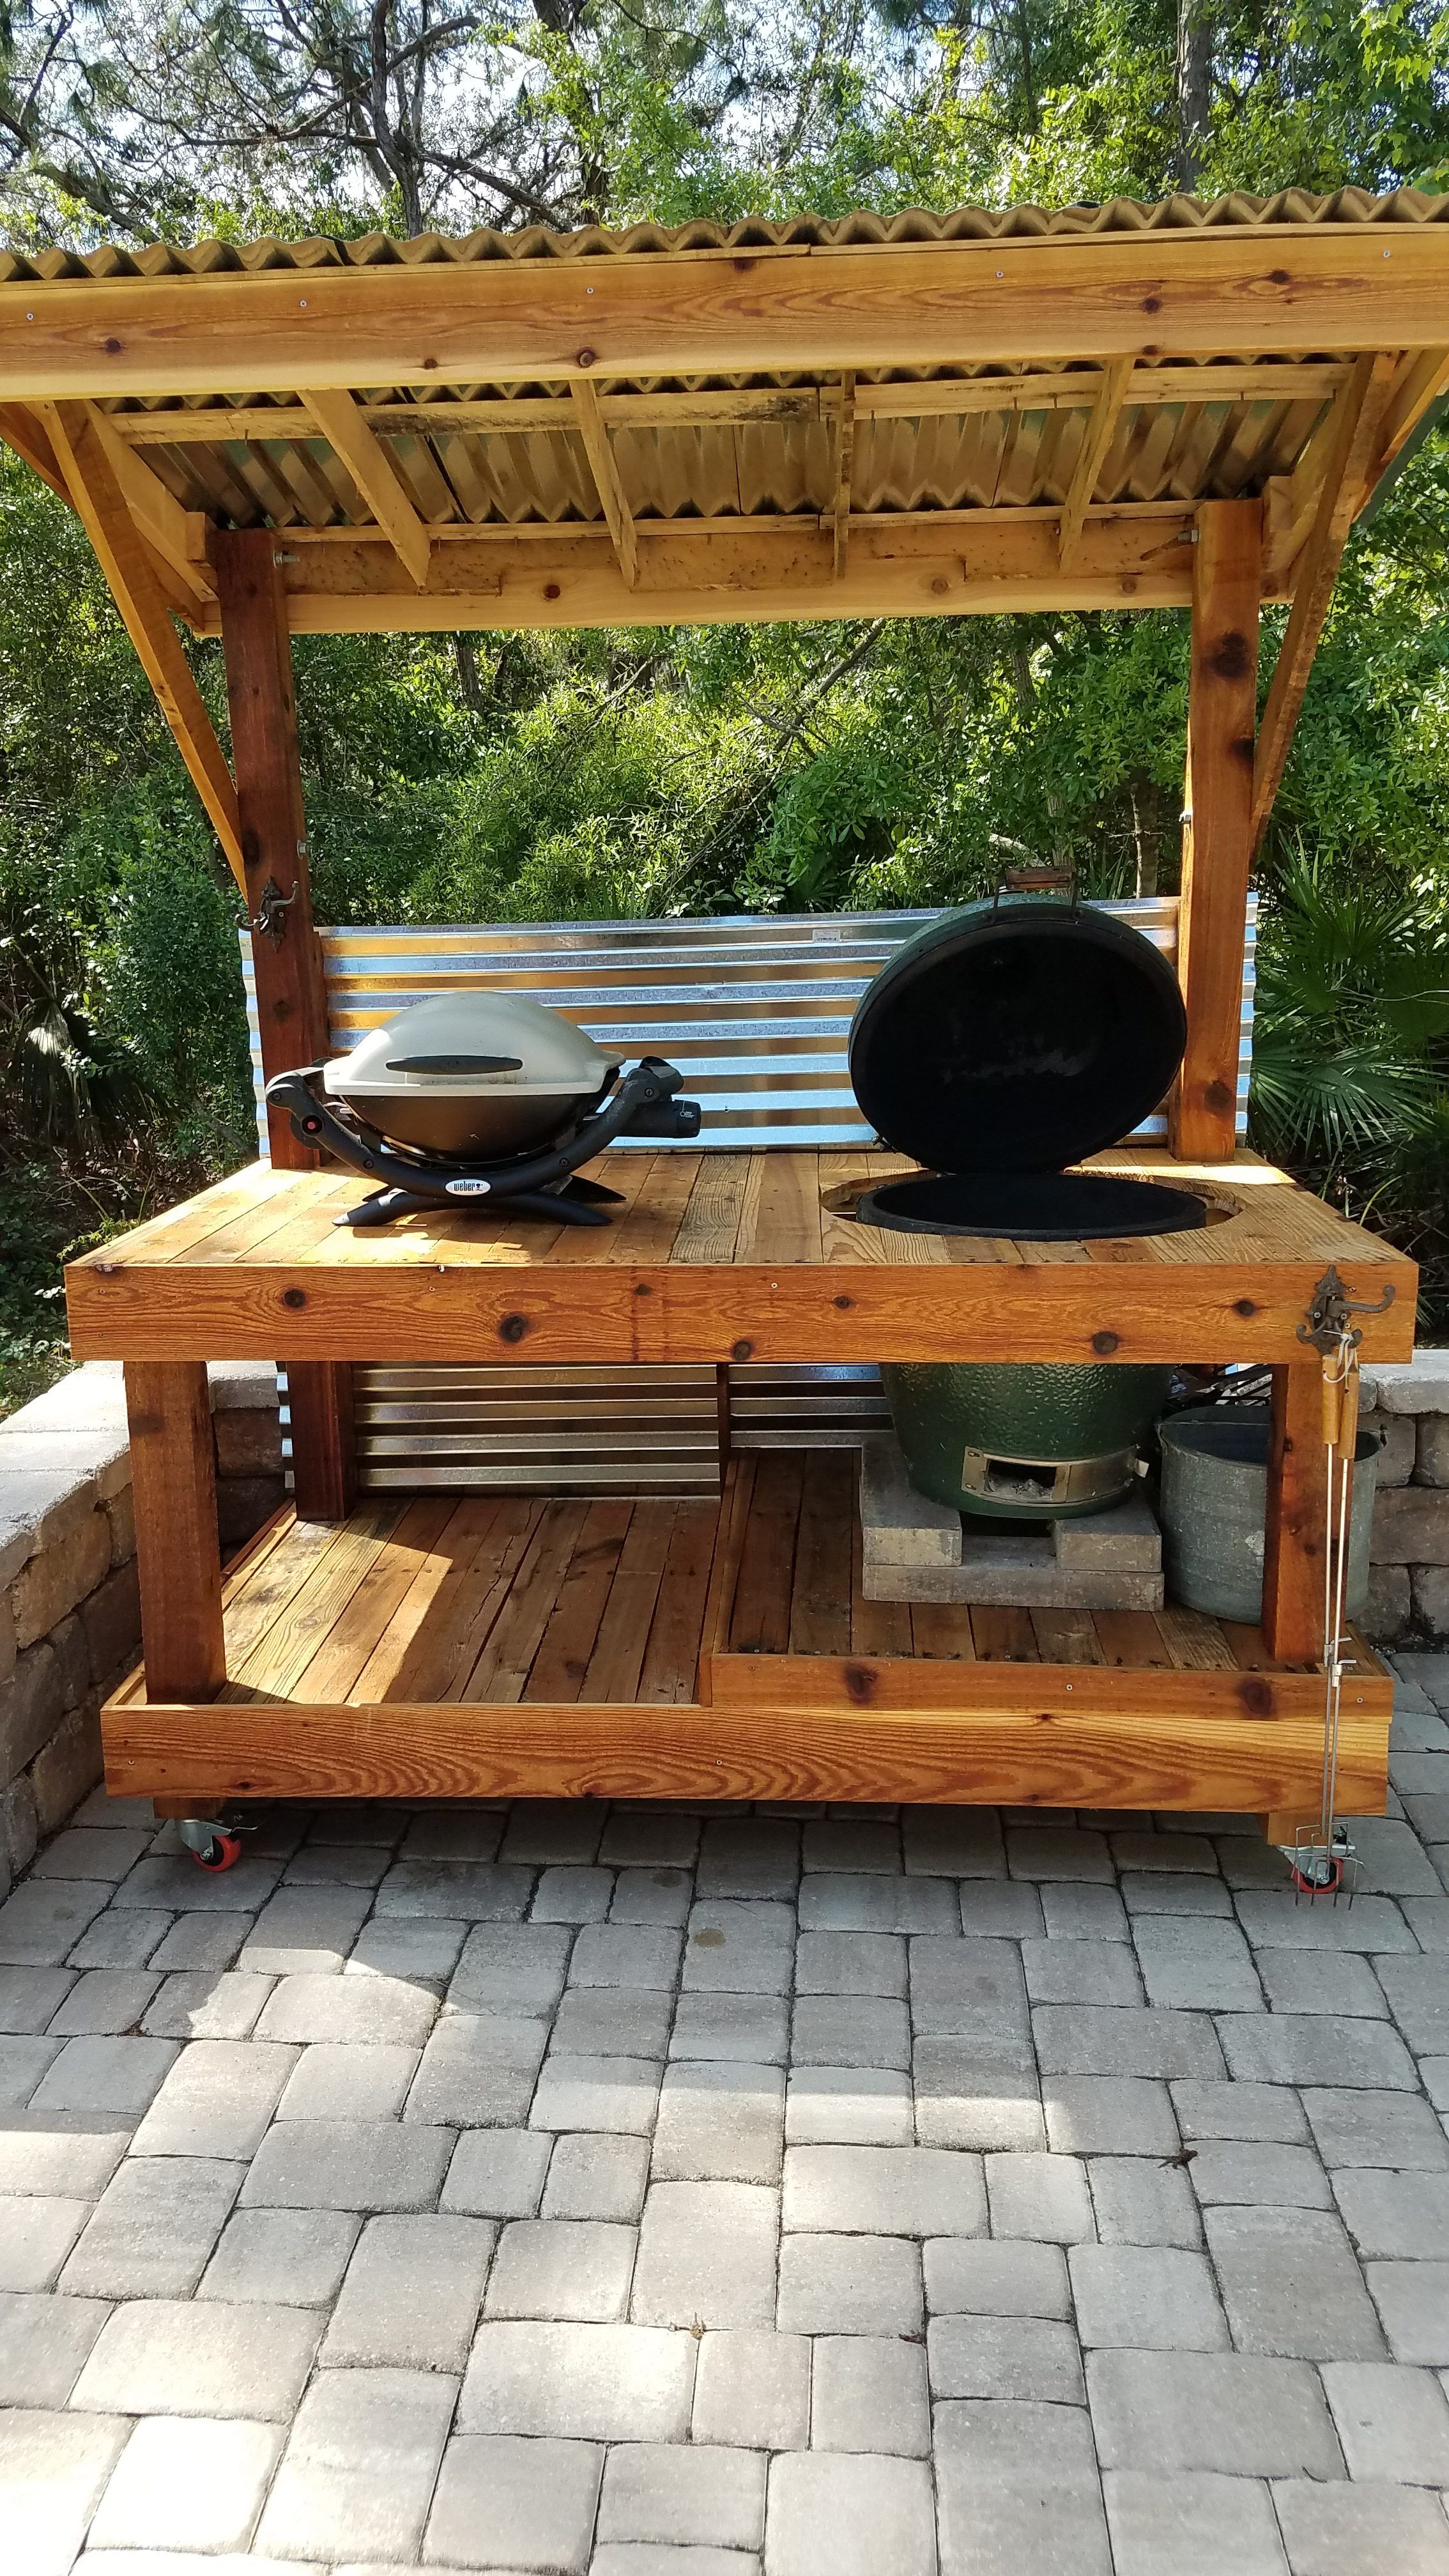 Bbq Surround Pallet Table | Outdoor living | Pinterest | Green eggs ...